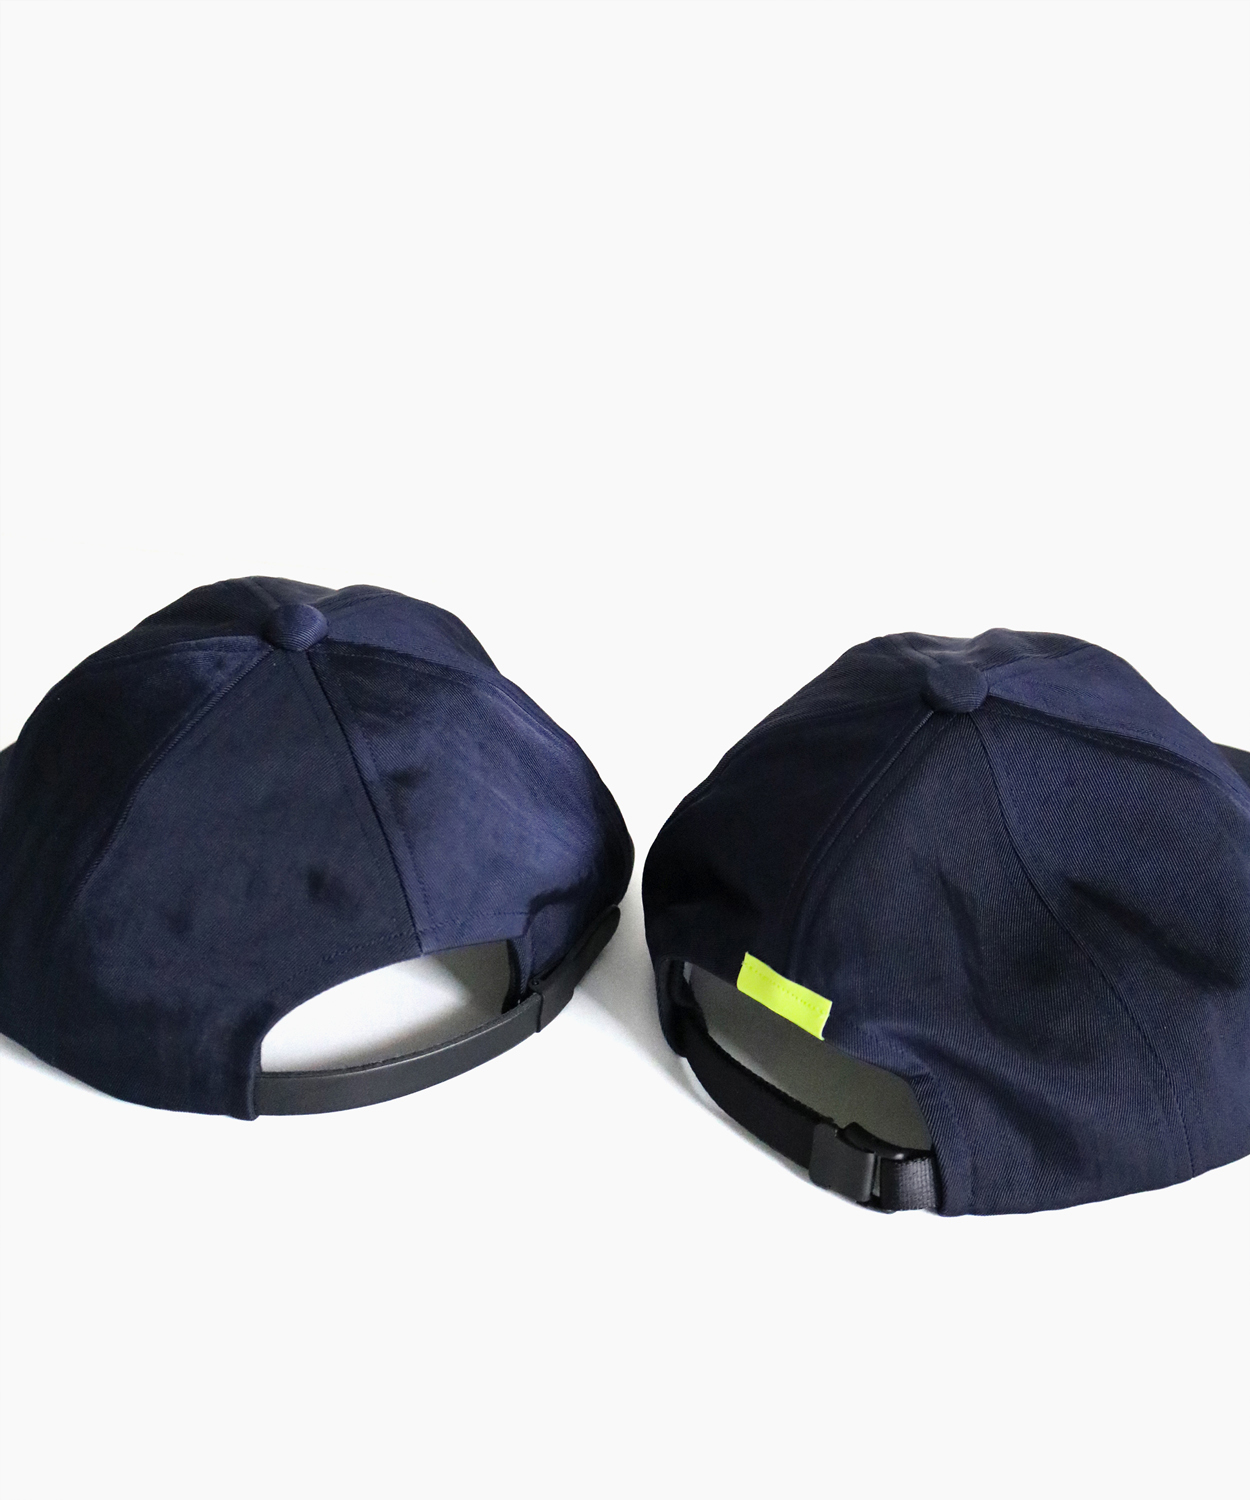 LONG BRIM CAP - Navy|for Continuer Extra Space|COMESANDGOES